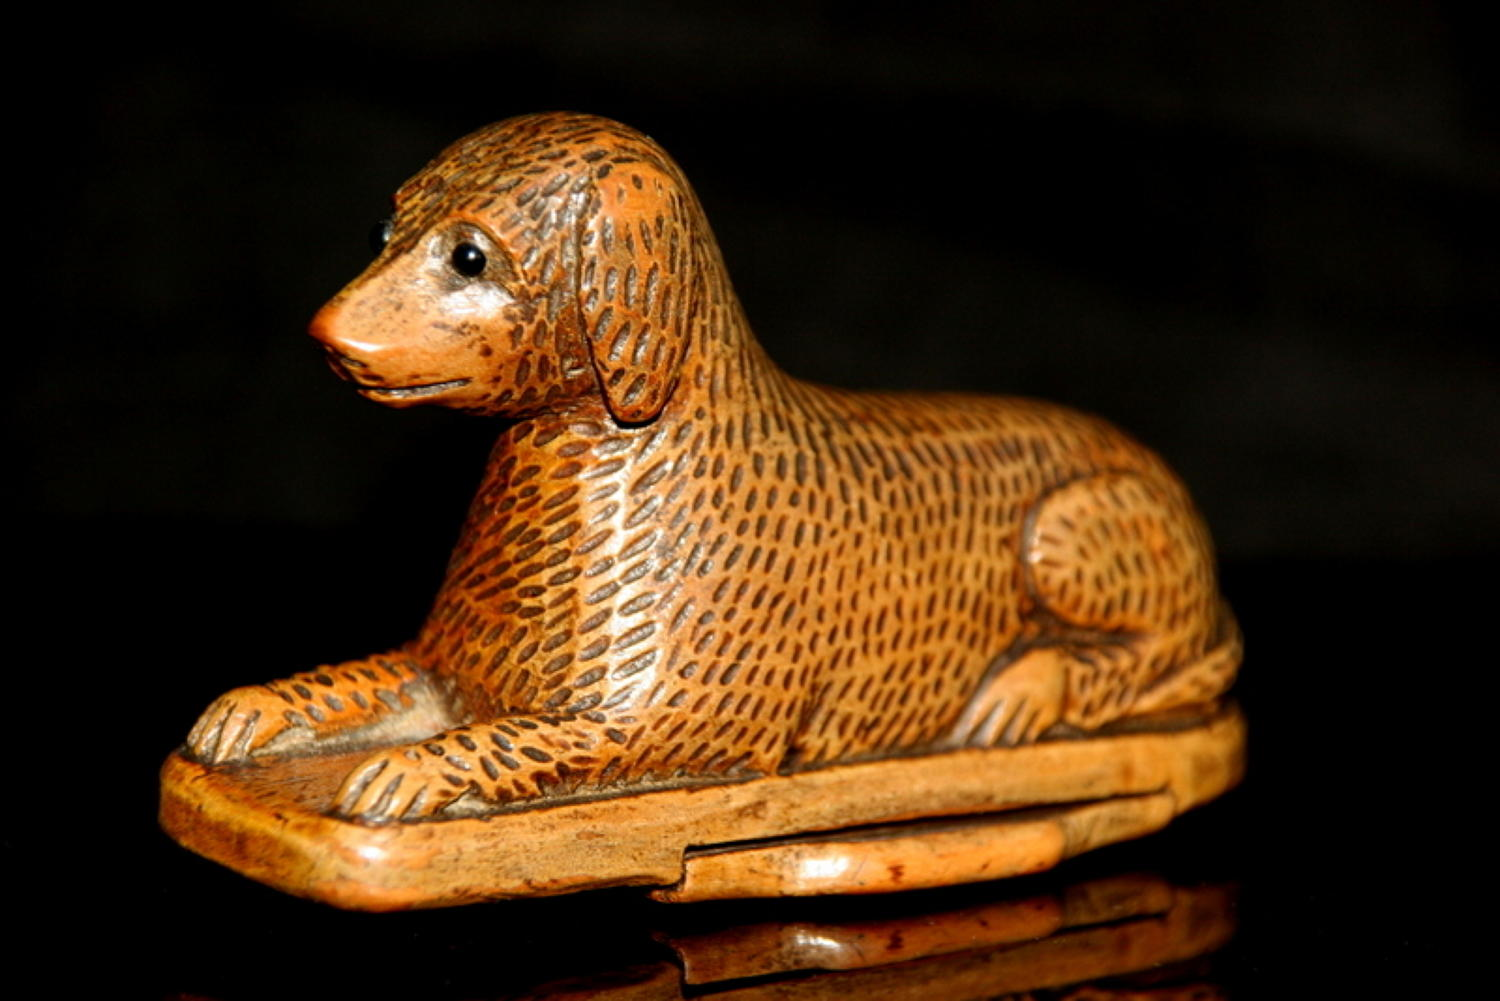 Dog Snuff Box, 19th century